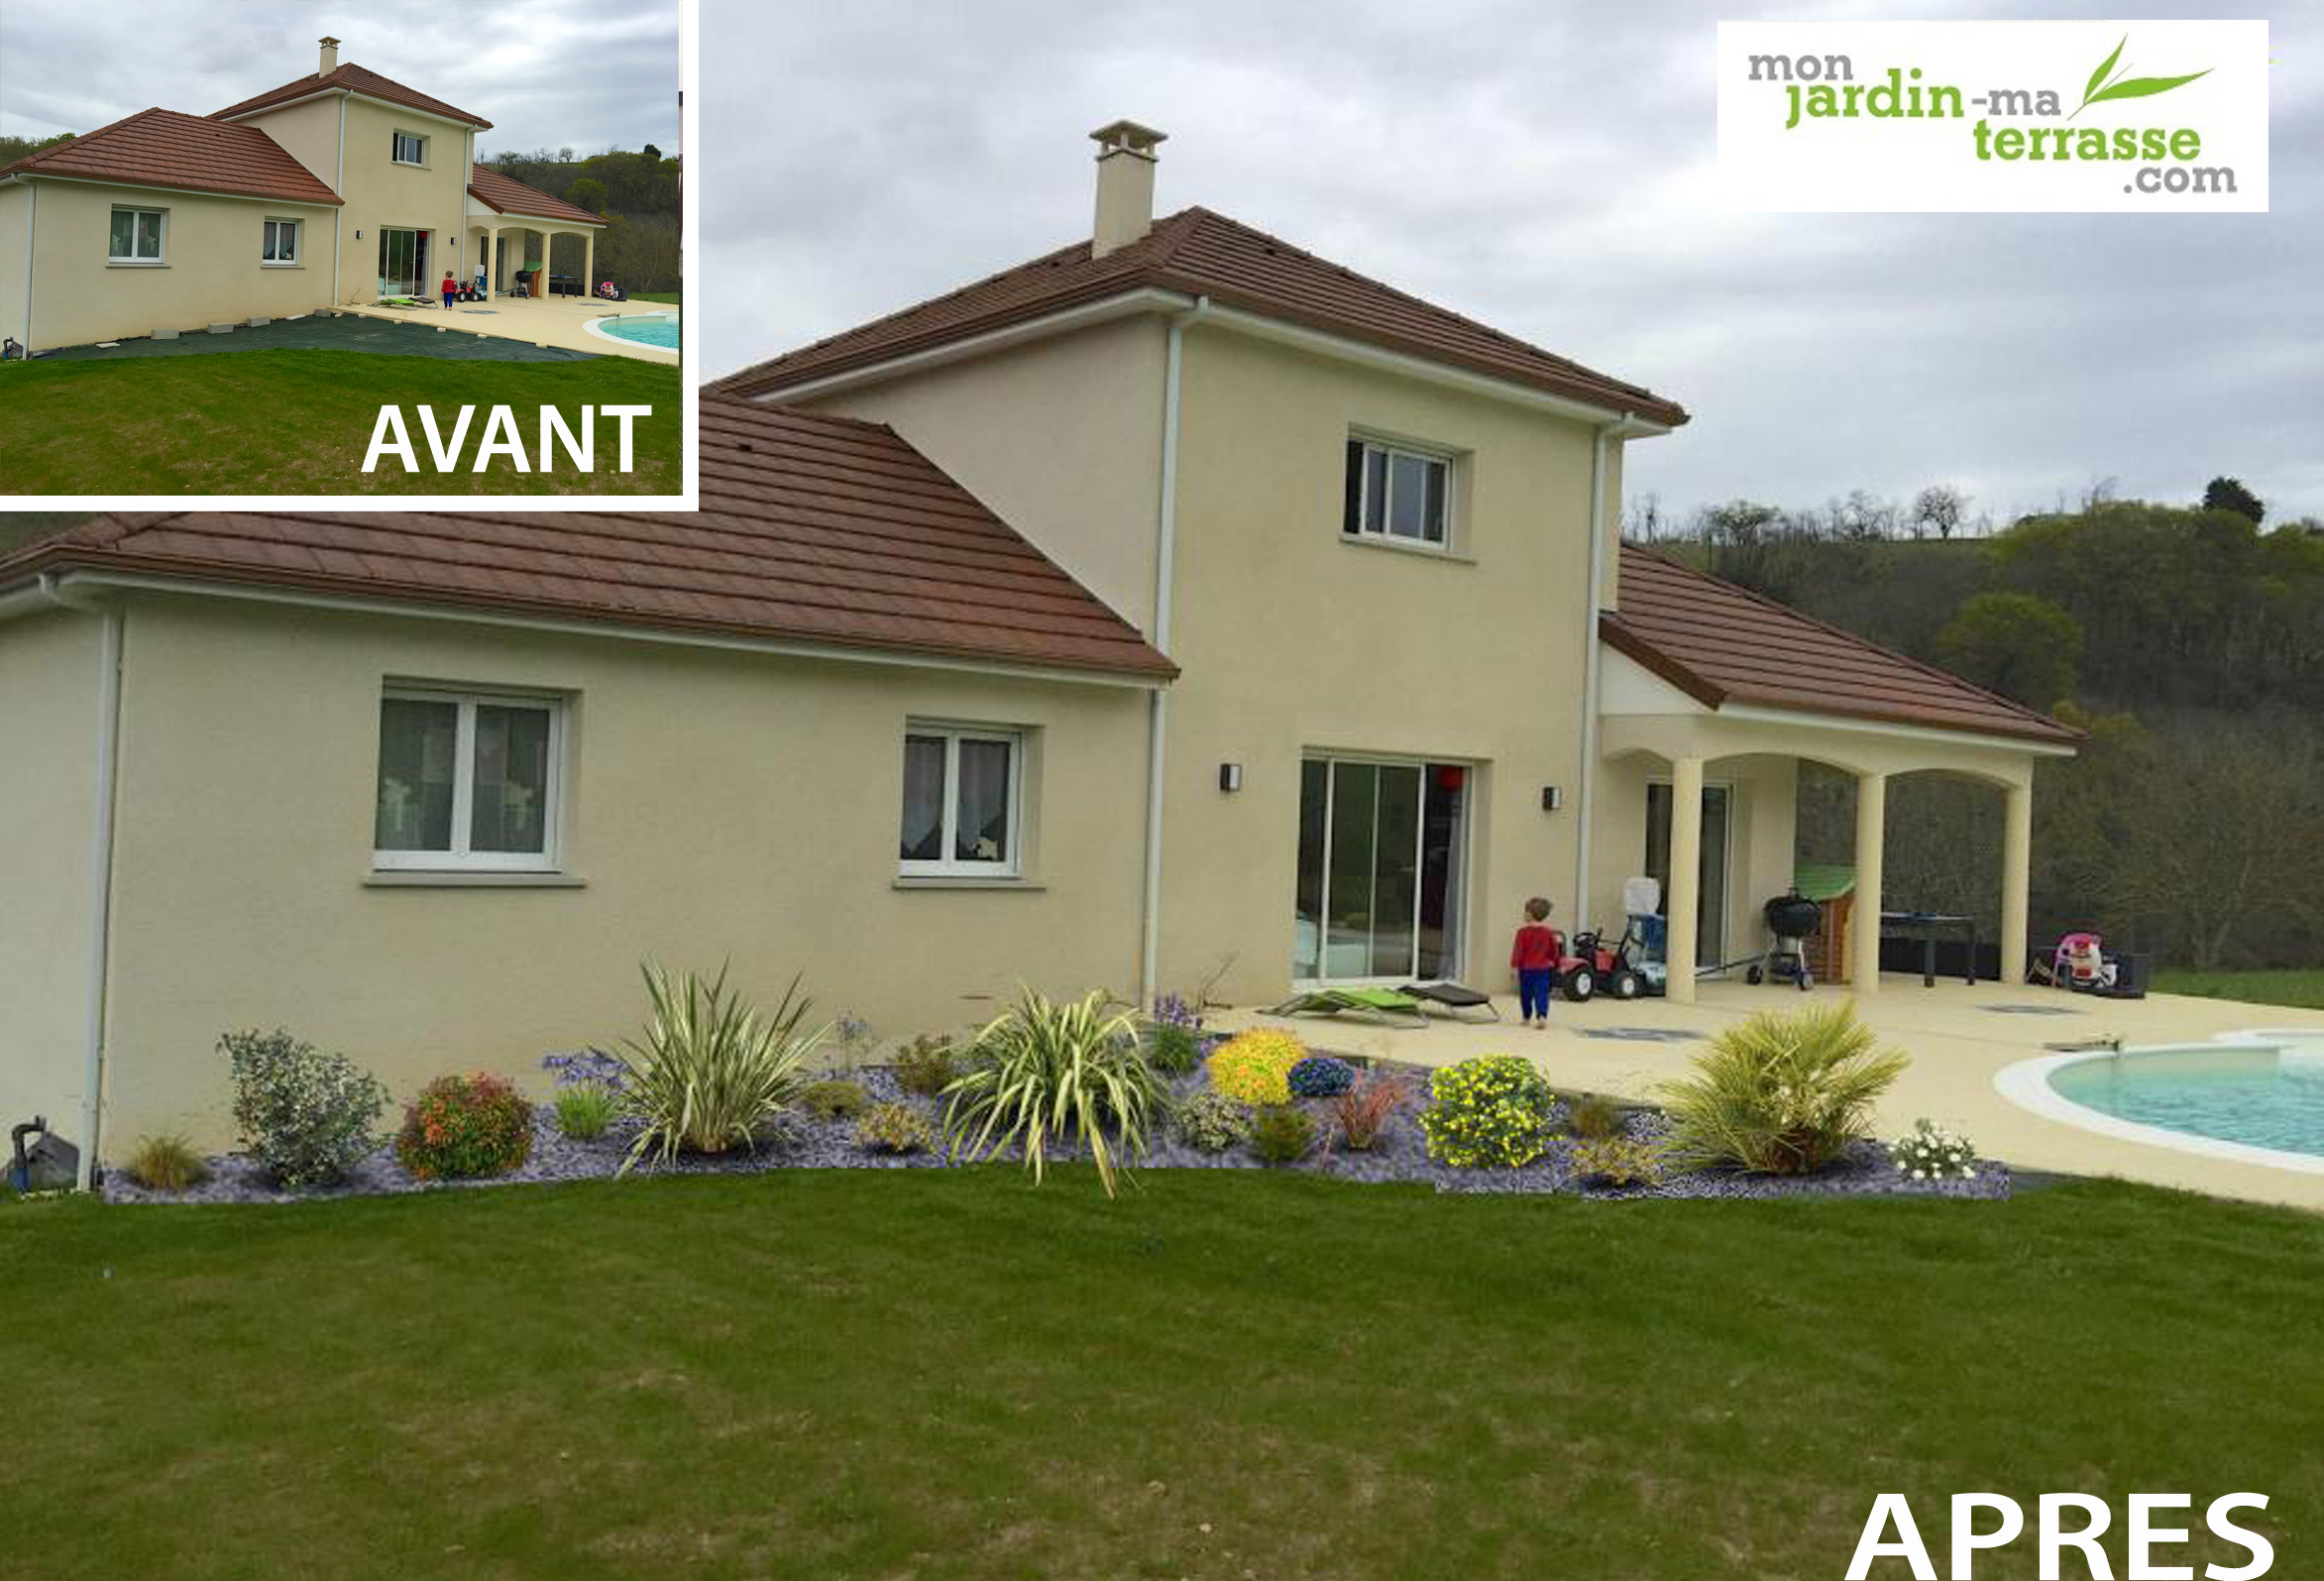 Am nagement ext rieur devant une maison monjardin for Photo amenagement jardin exterieur